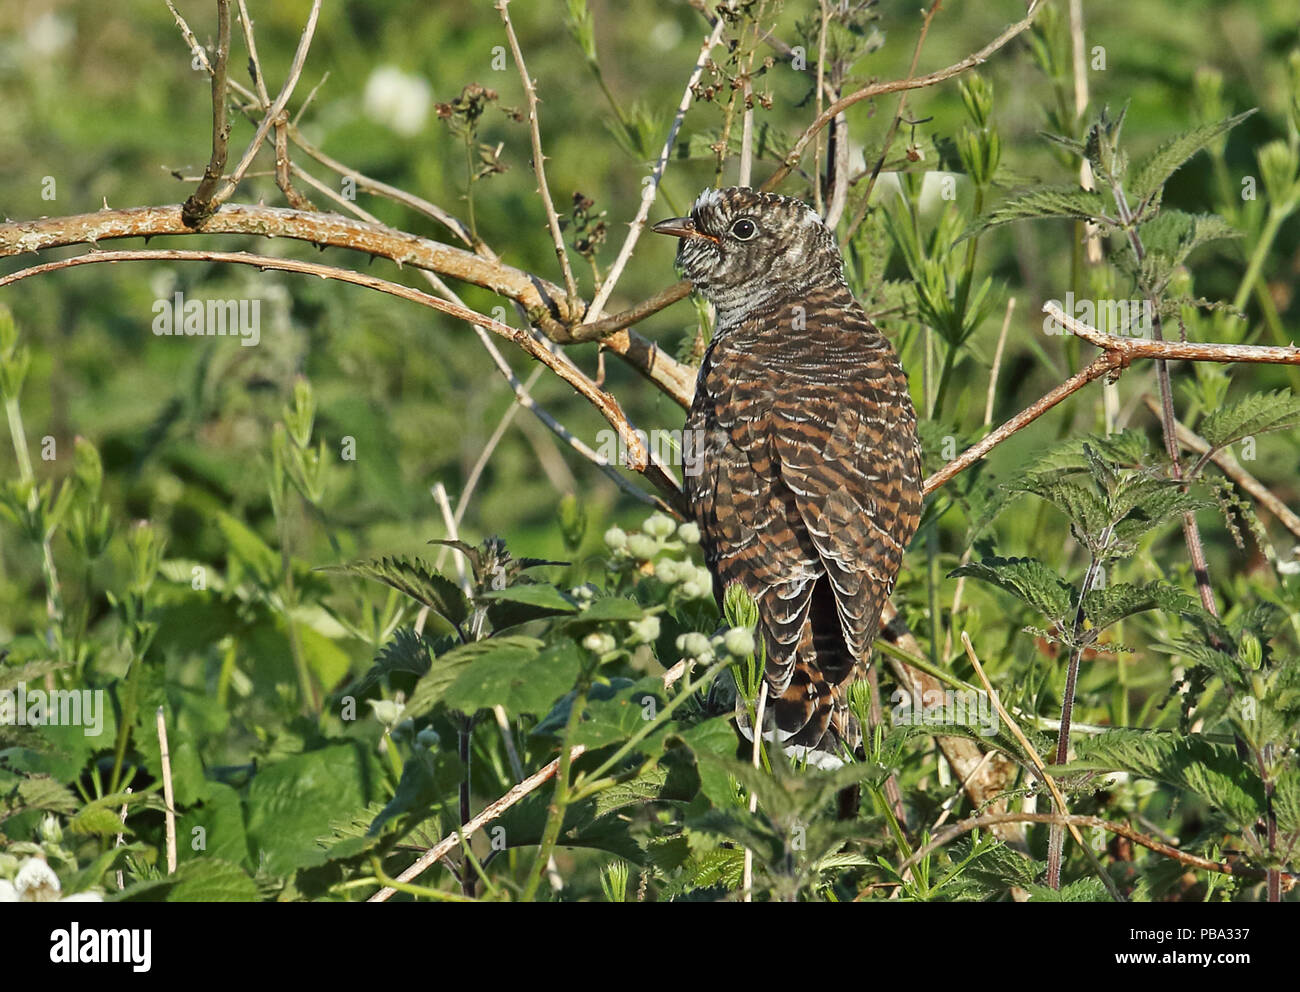 Common Cuckoo (Cuculus canorus canorus) juvenile perched on dead bramble   Eccles-on-Sea, Norfolk         June - Stock Image